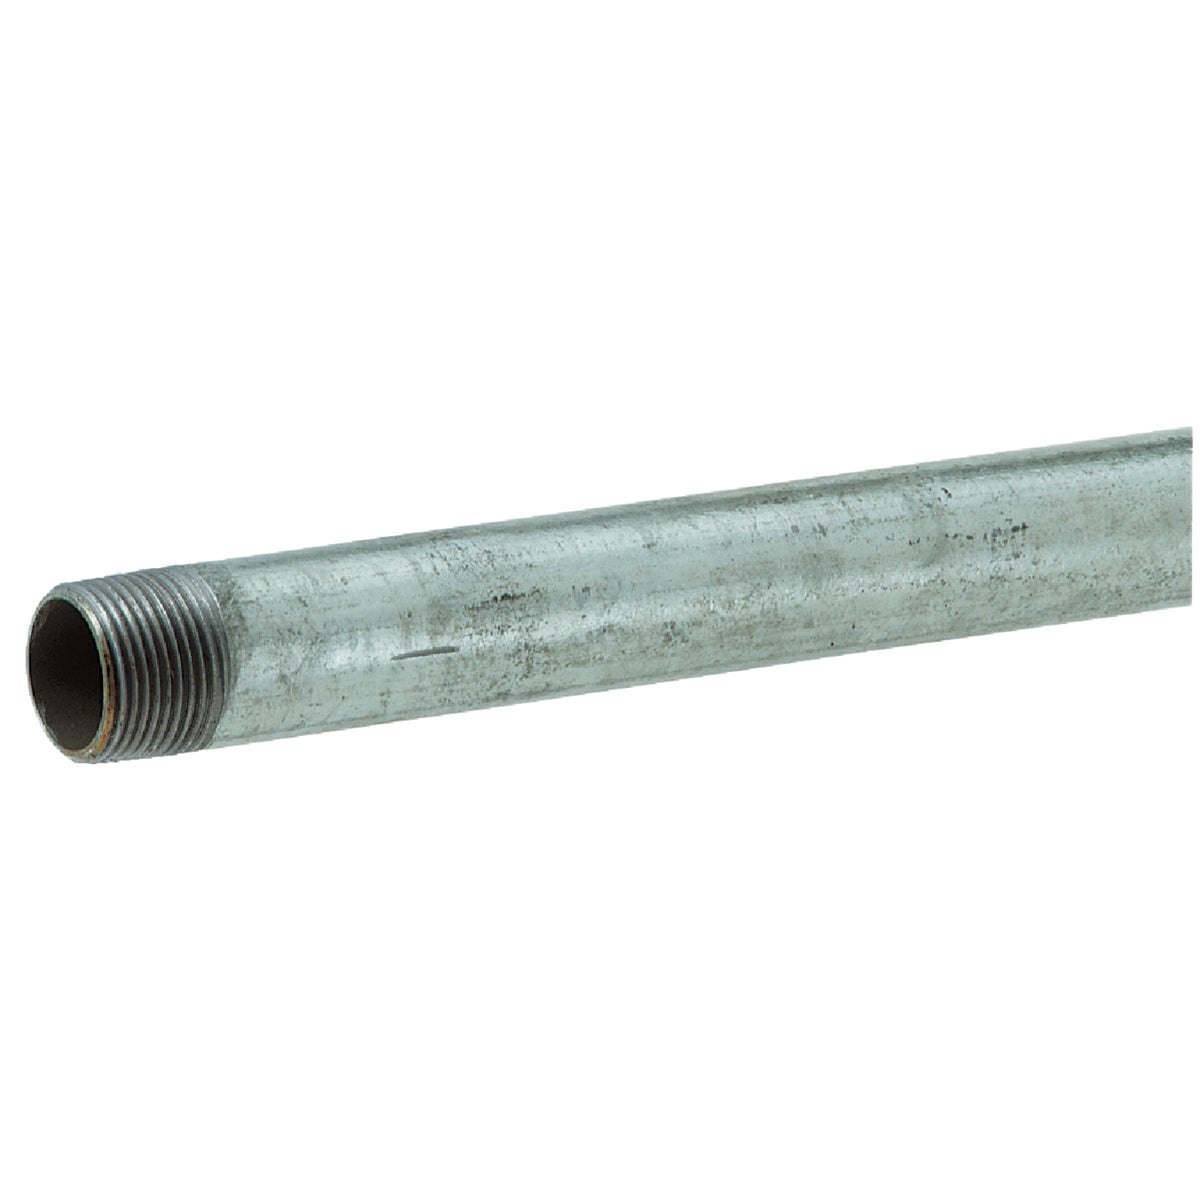 2X48 GALV RDI-CT PIPE - 2X48 by Southland Pipe Nippl